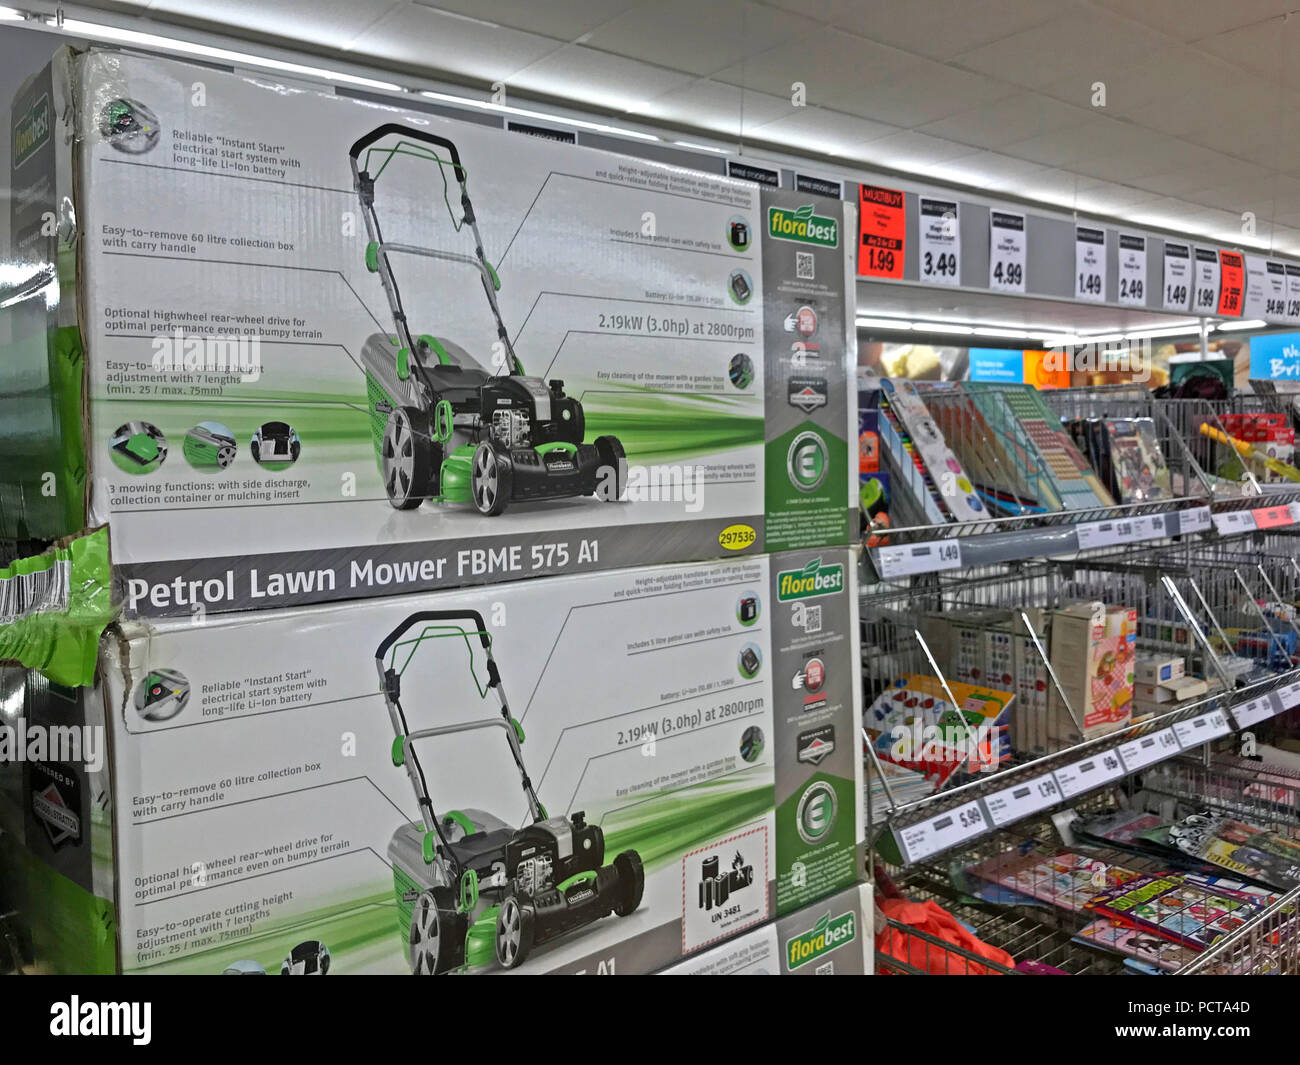 GoTonySmith,@HotpixUK,England,GB,Lidl,Aldi,lawnmowers,hedge trimmers,Latchford,Warrington,Cheshire,North West England,UK,of a,discount,middle isle,middle,centre,isle,aisle,bargain,grass cutter,grass cutting,hedge,trimmer,grass,hardware,Centre,Aisle,Discount,Supermarket,Centre,Aisle,Aldi,Supermarket,Centre,Aisle,LIDL,Supermarket,Aldi Supermarket,Lidl Supermarket,ALDI,LIDL,supermarket,surprises,Shoppers,delight,middle aisle Lidl